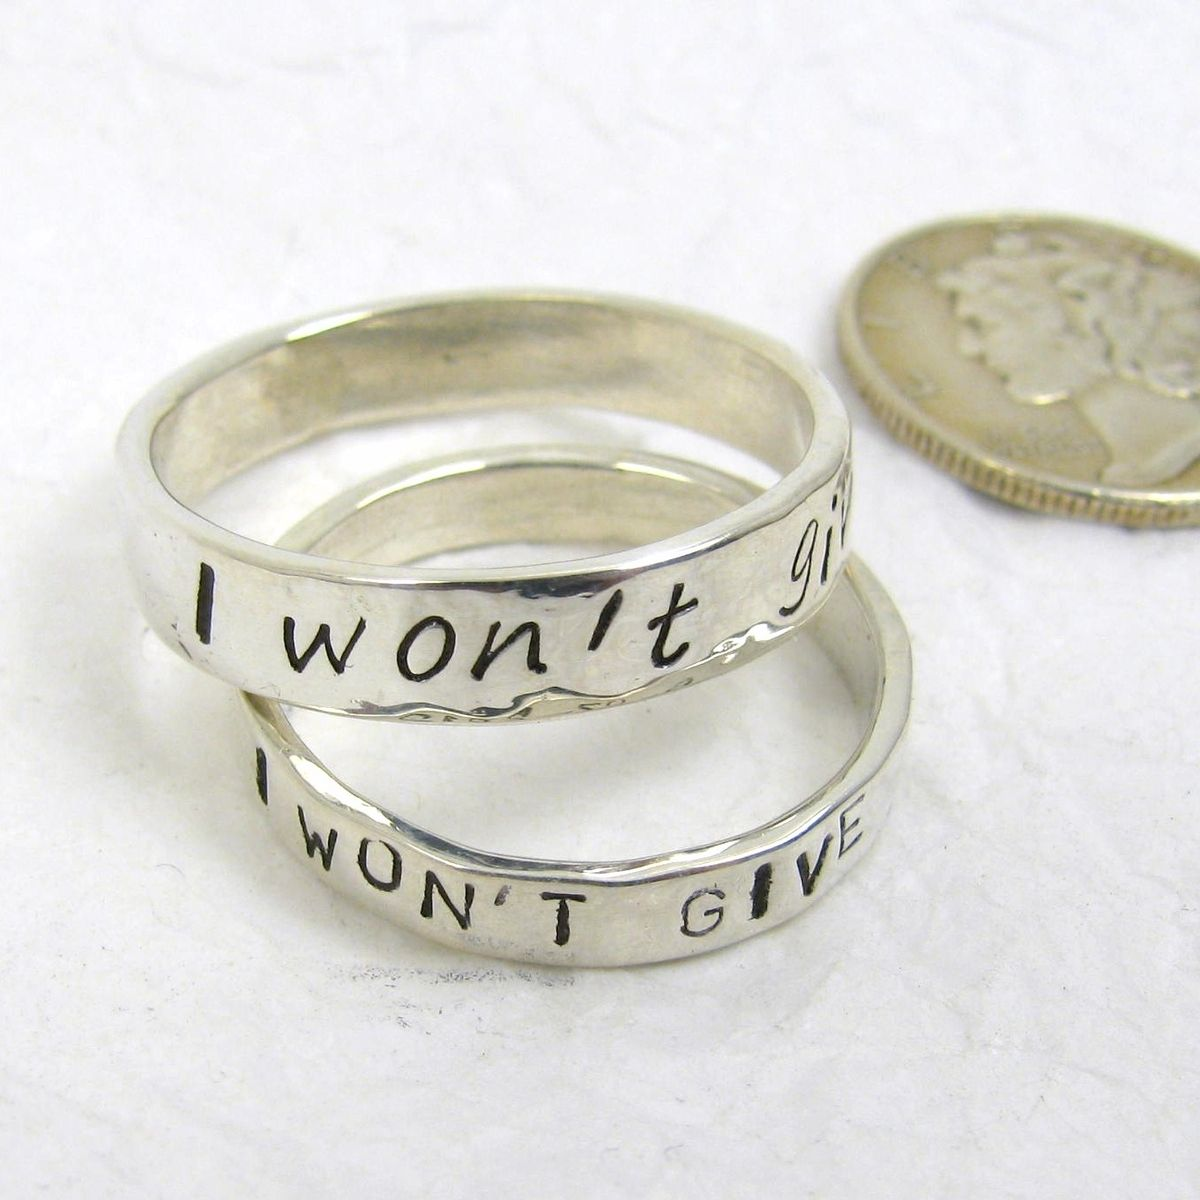 relationship day vows love rings hands wedding vow hand anniversaries finger married ring photo m anniversary getting stock fingers